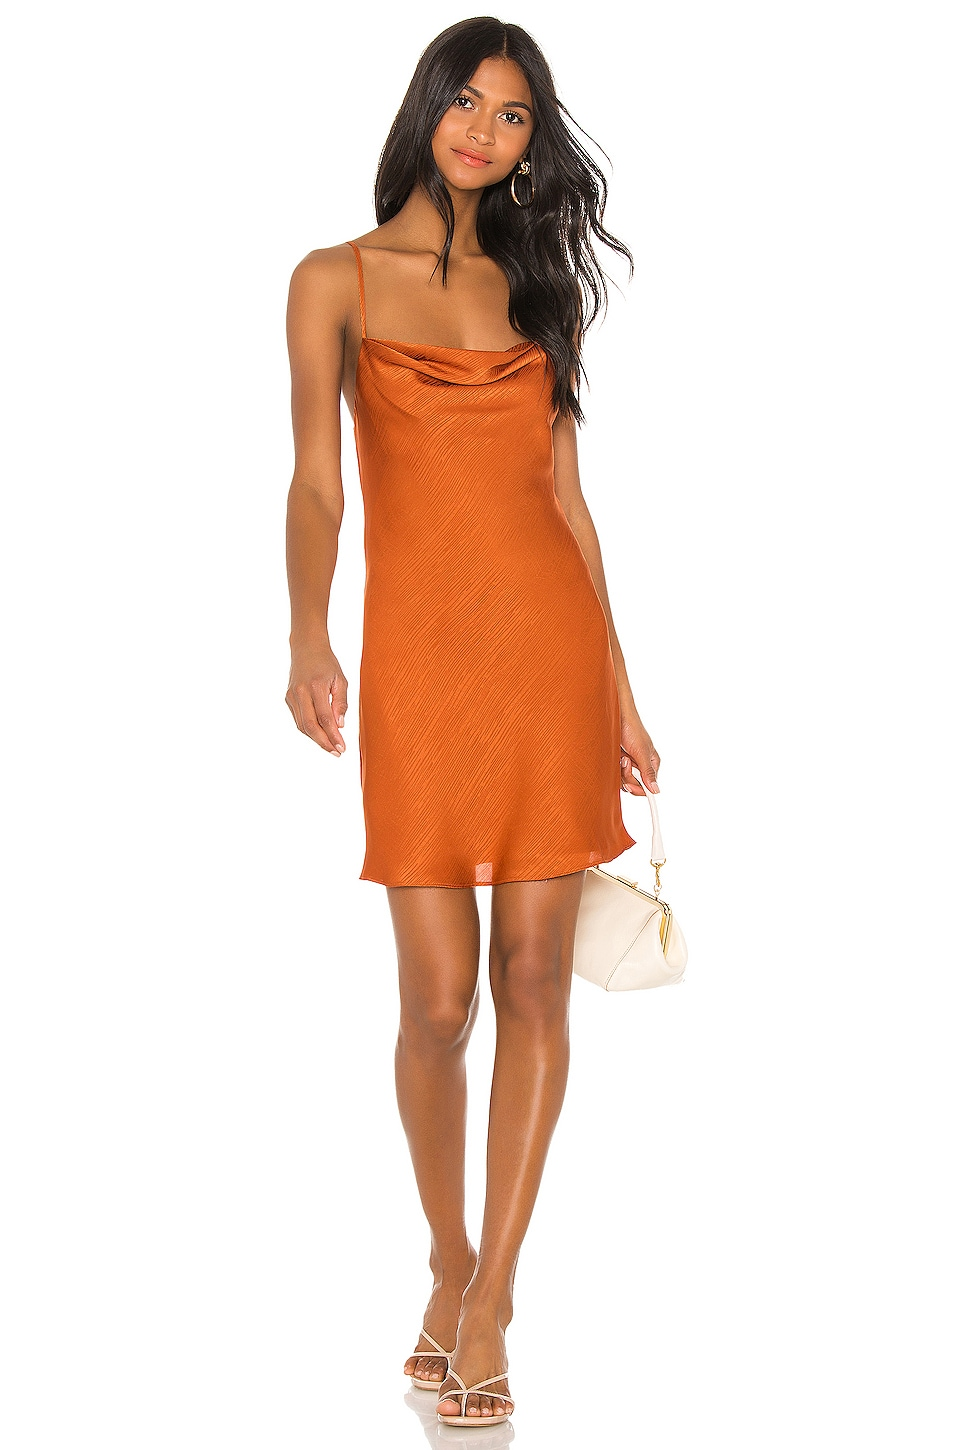 House of Harlow 1960 X REVOLVE Ira Mini Dress in Burnt Orange